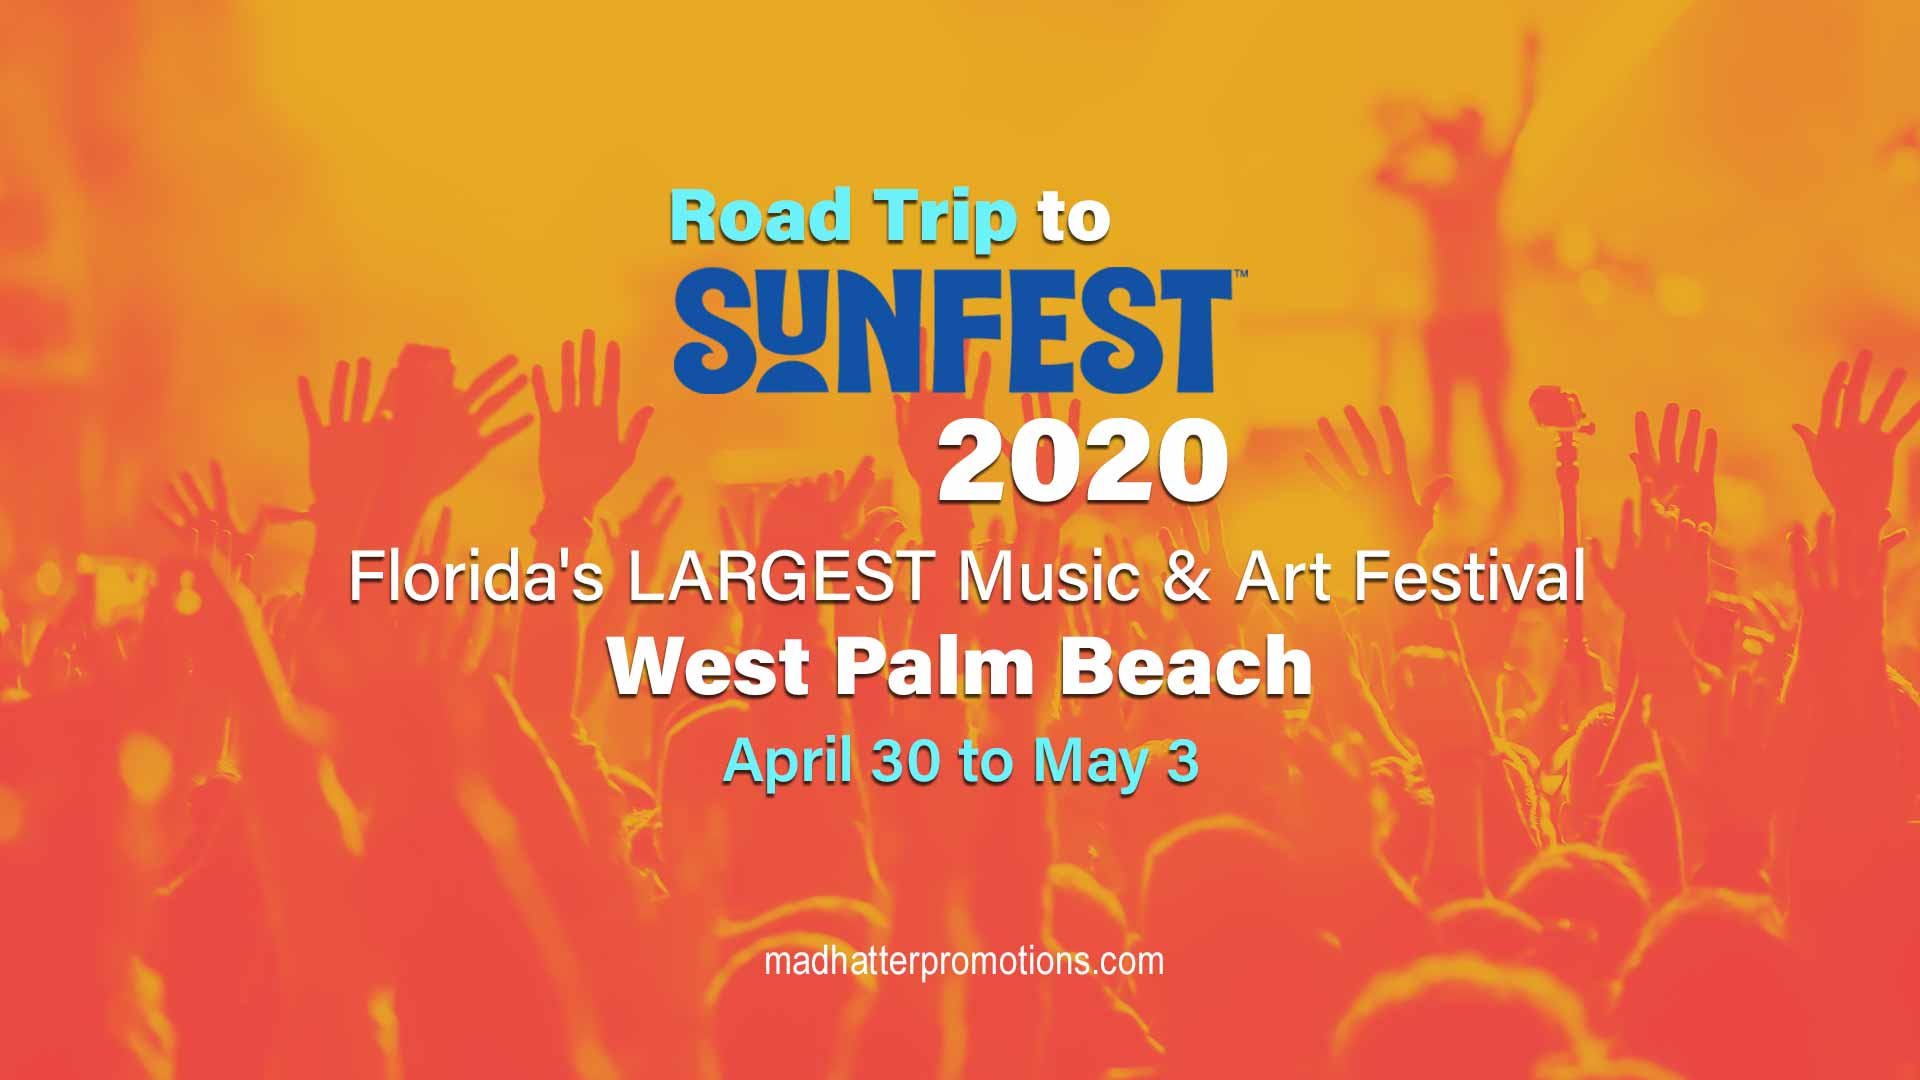 Road Trip to SUNFEST 2020 - Florida's LARGEST Music & Art Festival, Thu - Sun, April 30 to May 3, West Palm Beach